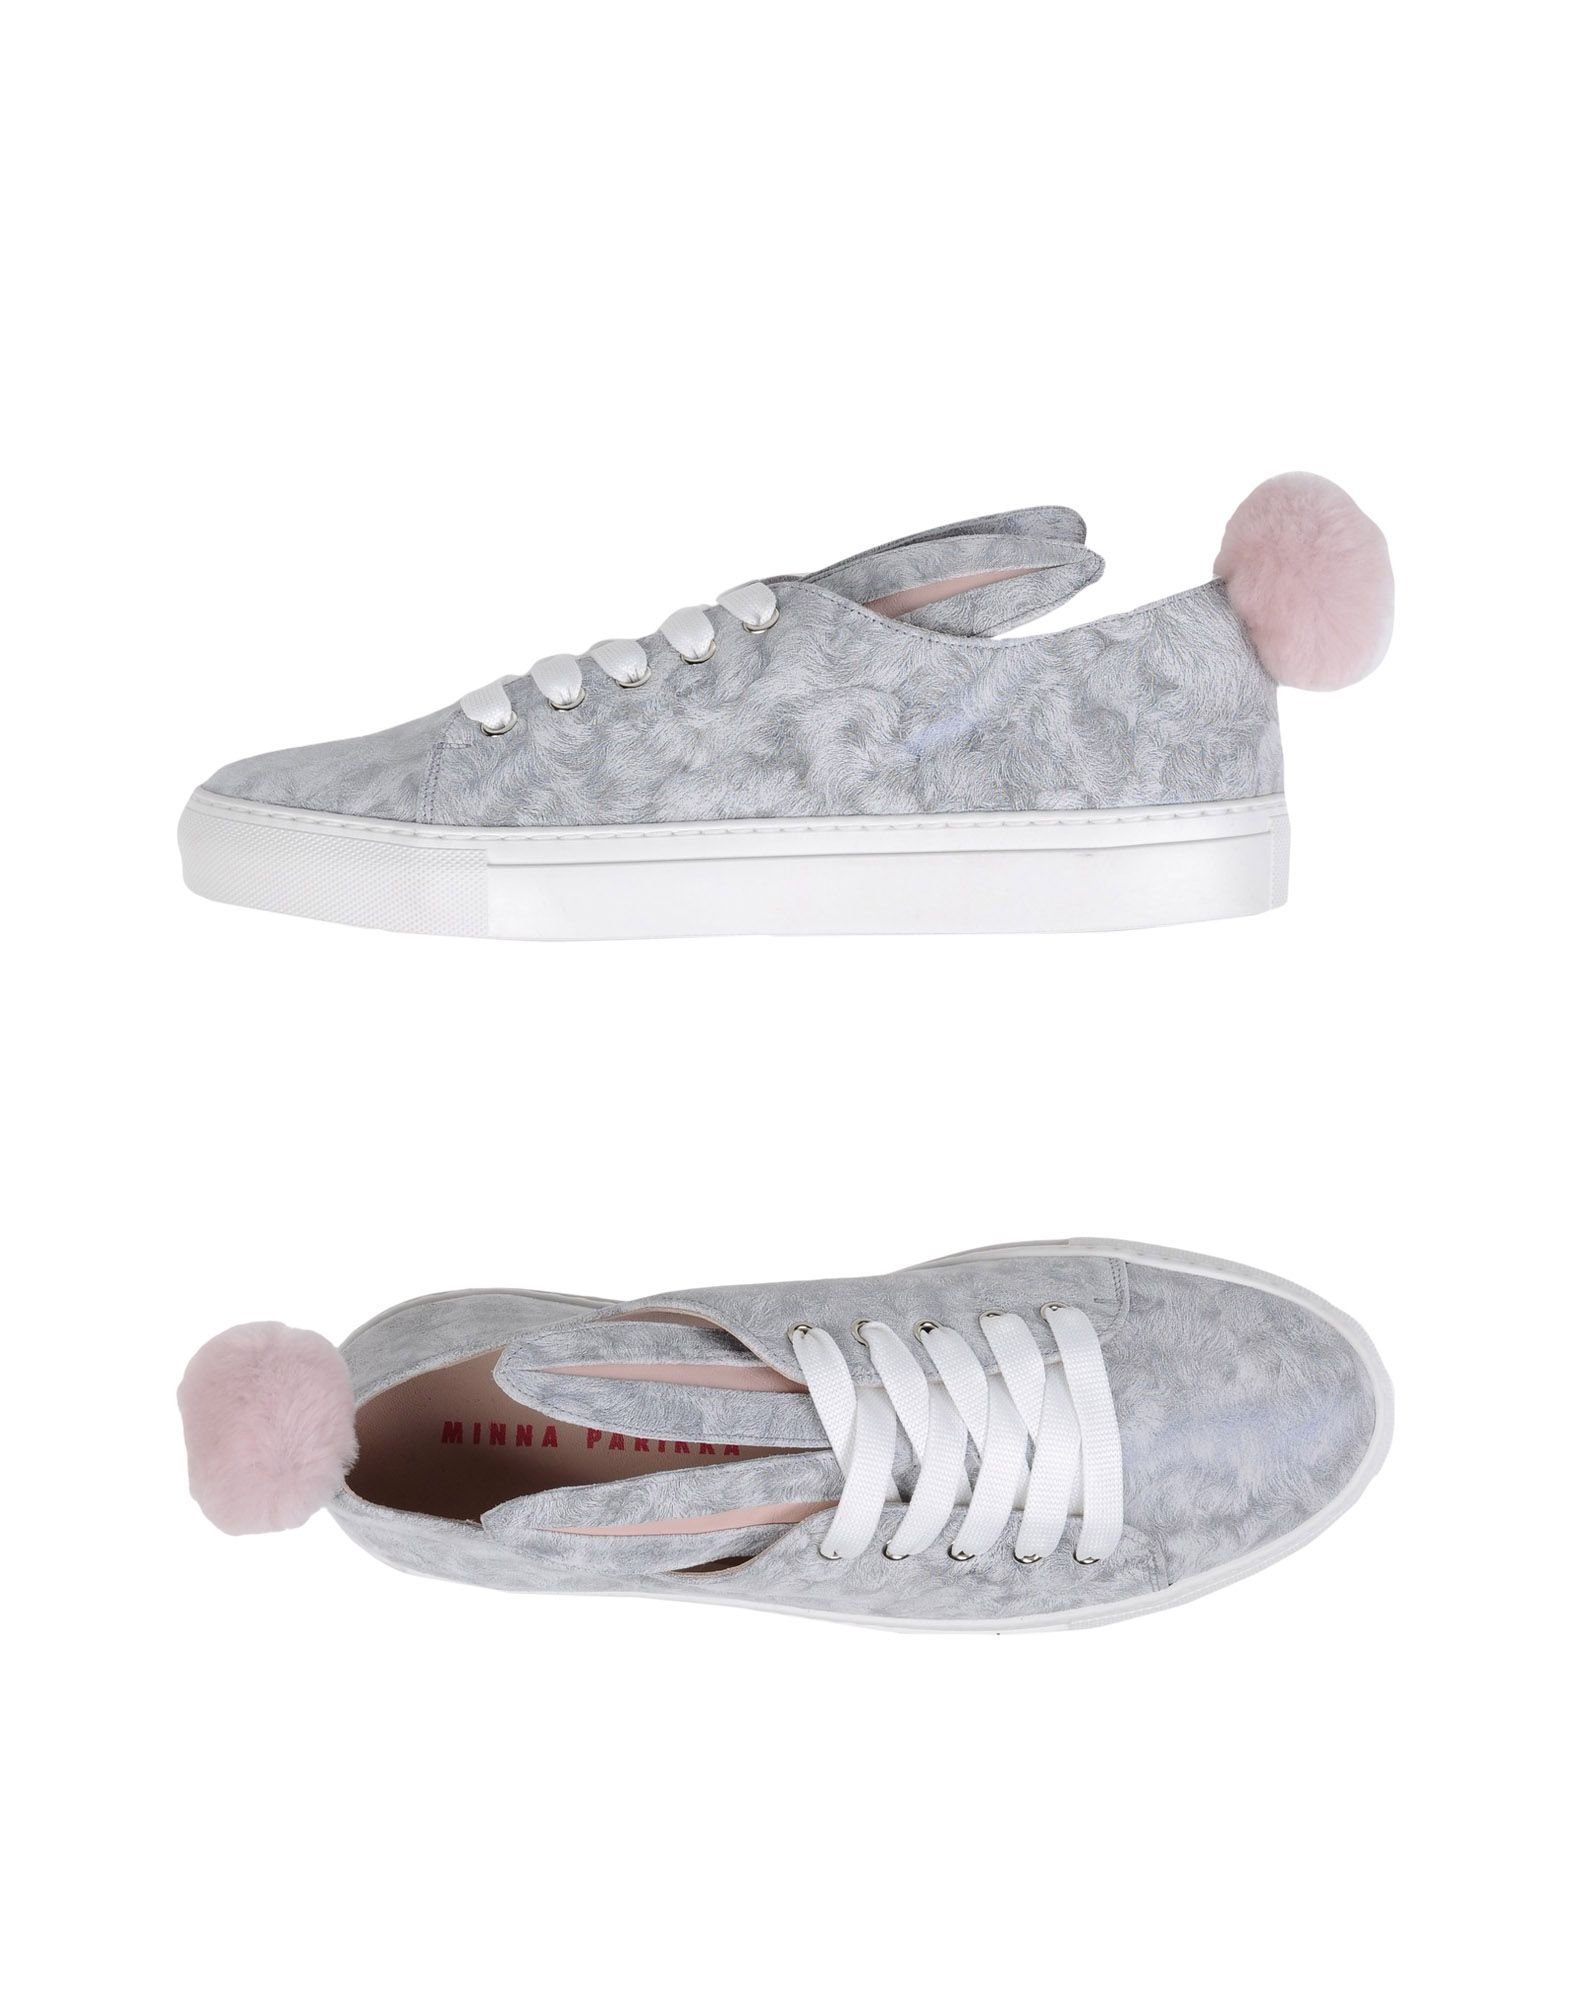 Sneakers Minna Parikka Tail Sneaks Low Top Sneakers With Bunny Ears And Tail - Donna - Acquista online su